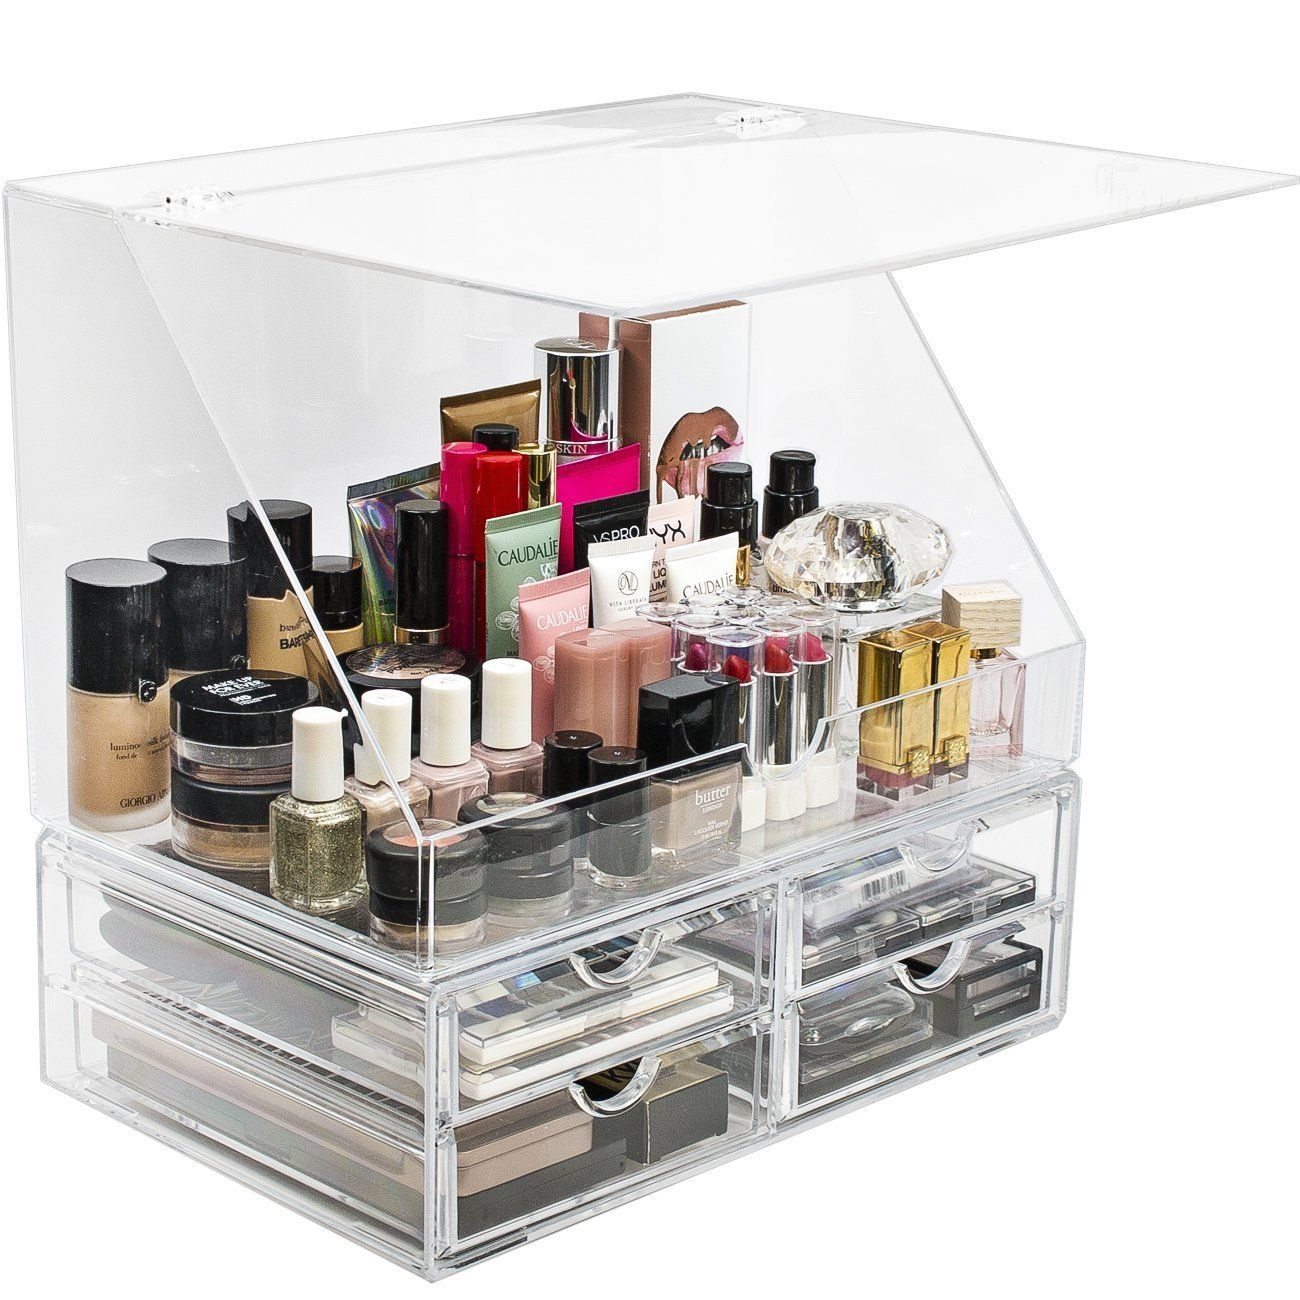 Sorbus Acrylic Cosmetics Makeup Organizer Storage Case Holder Display With Slanted Front Open Lid Cosmetic